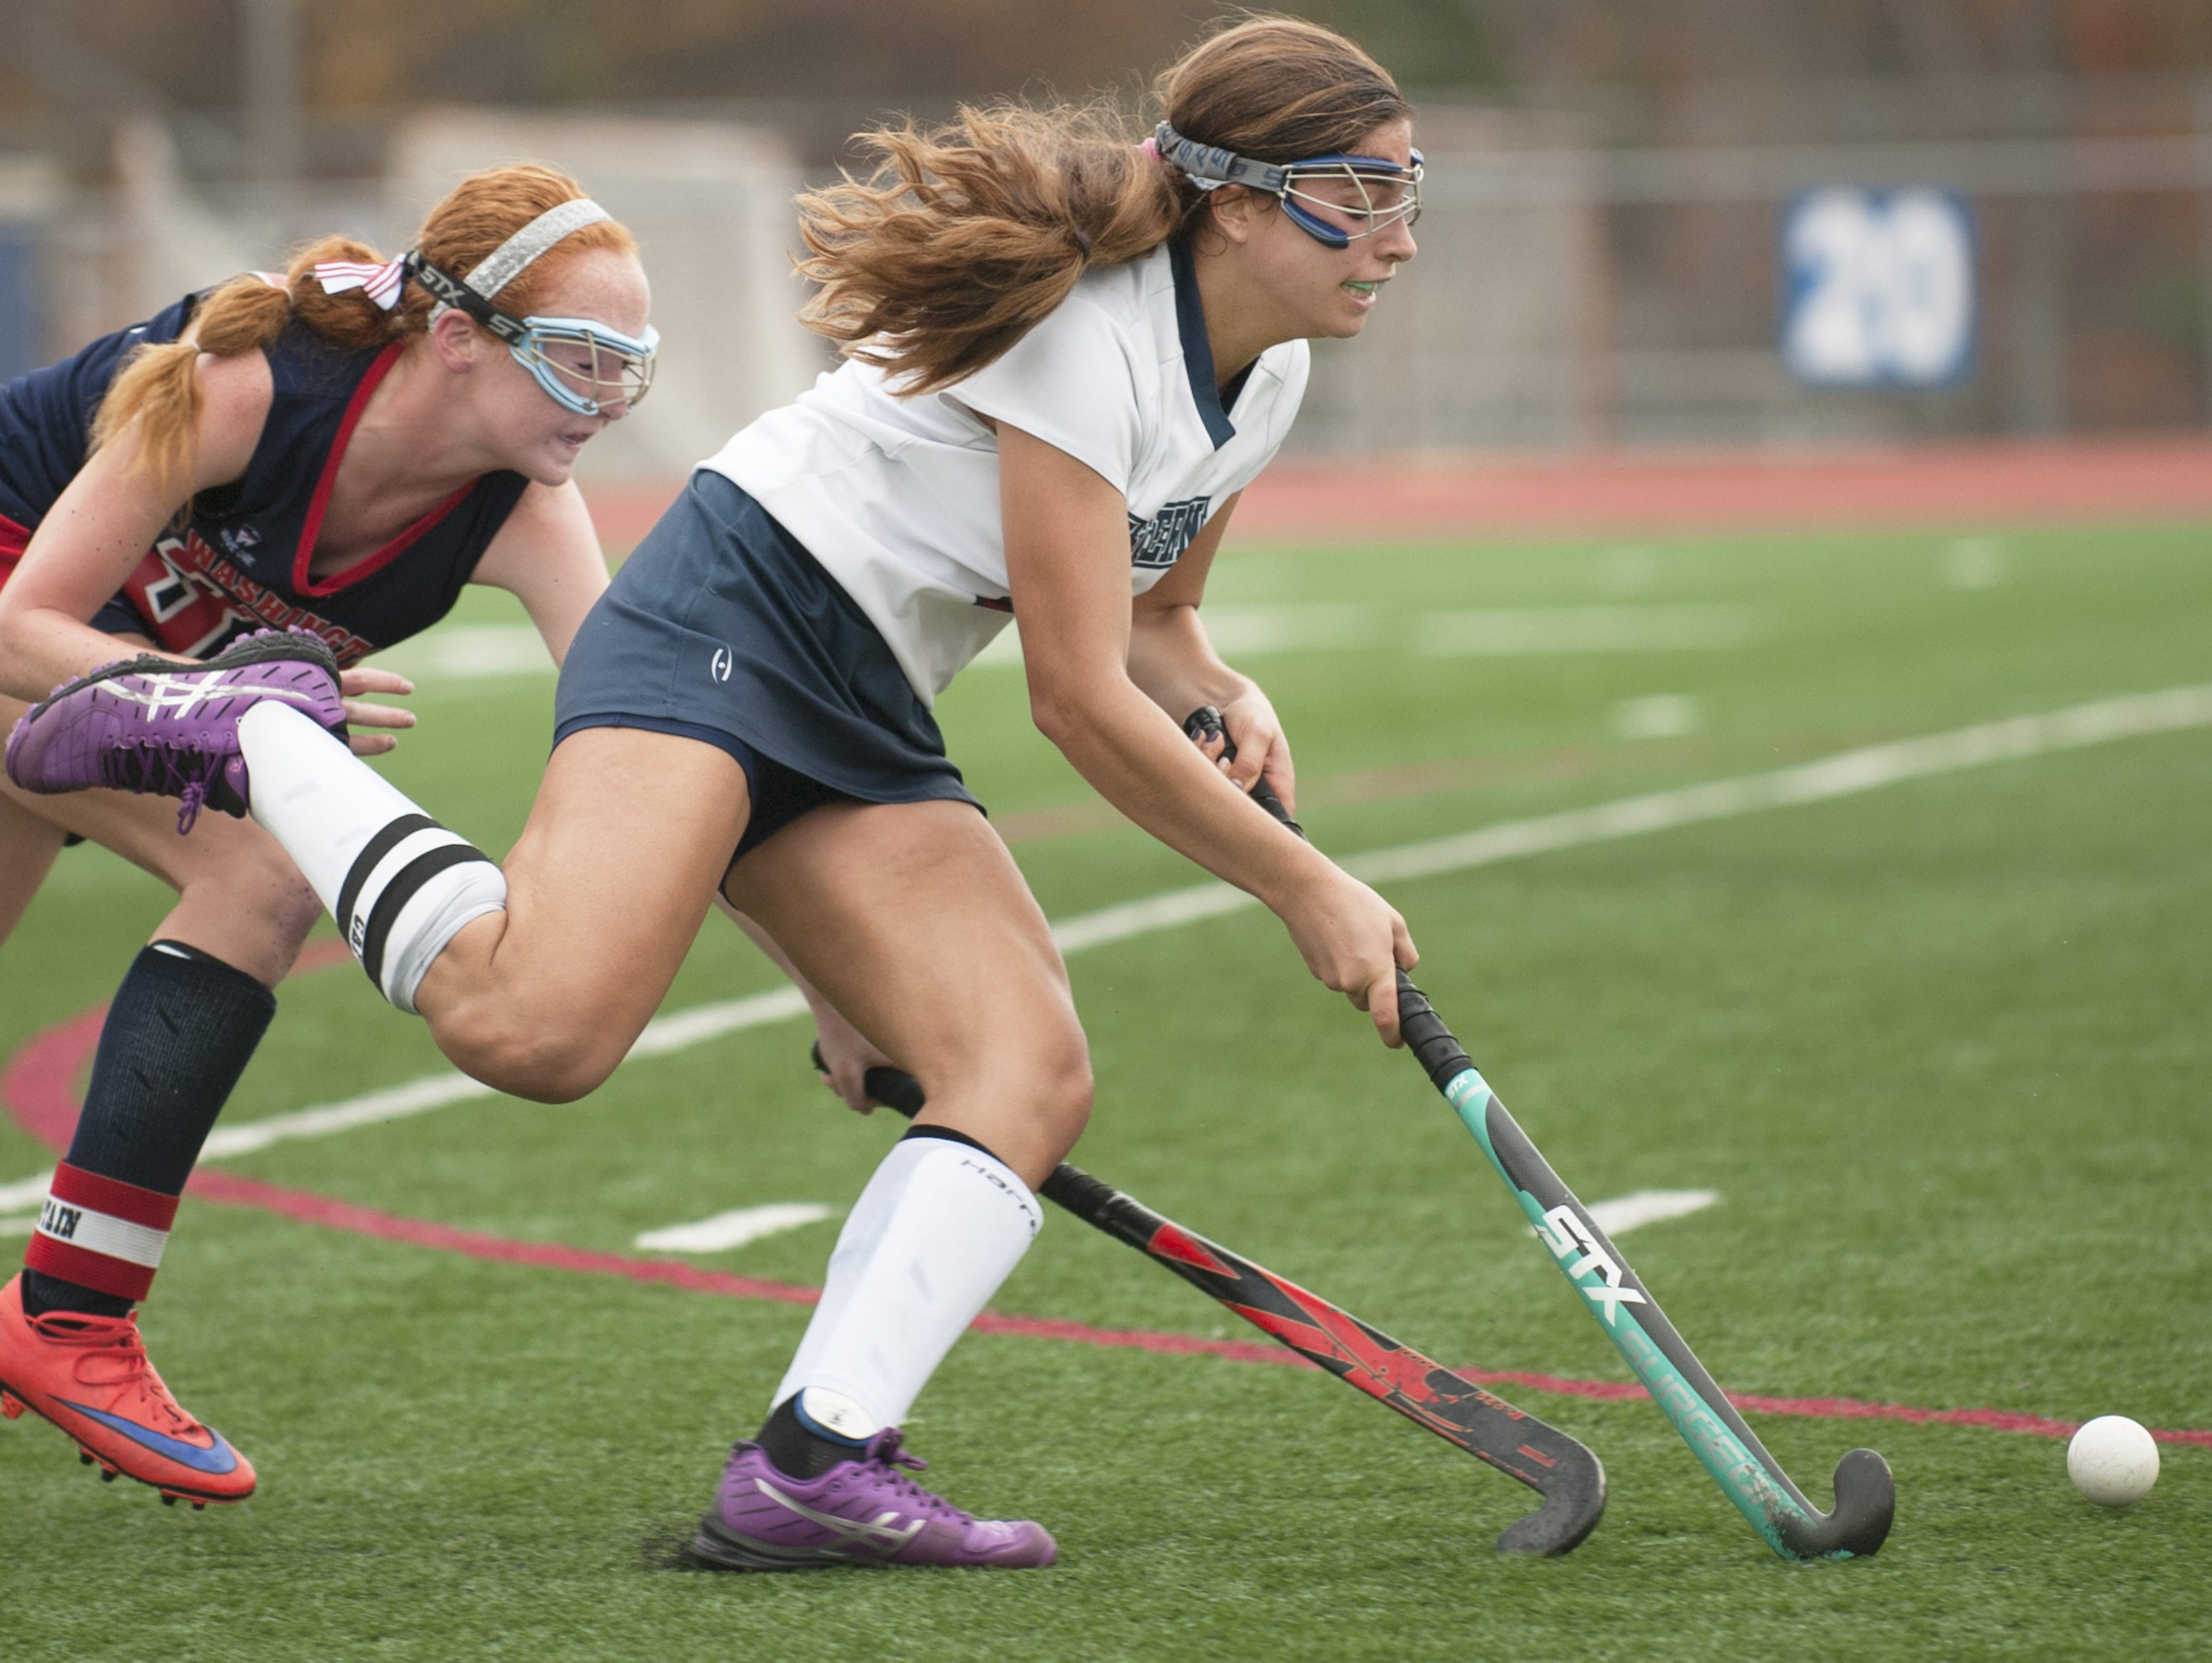 Eastern's Madison Morano controls the ball in front of Washington Township's Colleen McAninley during the second half of the South Jersey Group 4 field hockey final Thursday at Eastern High School.